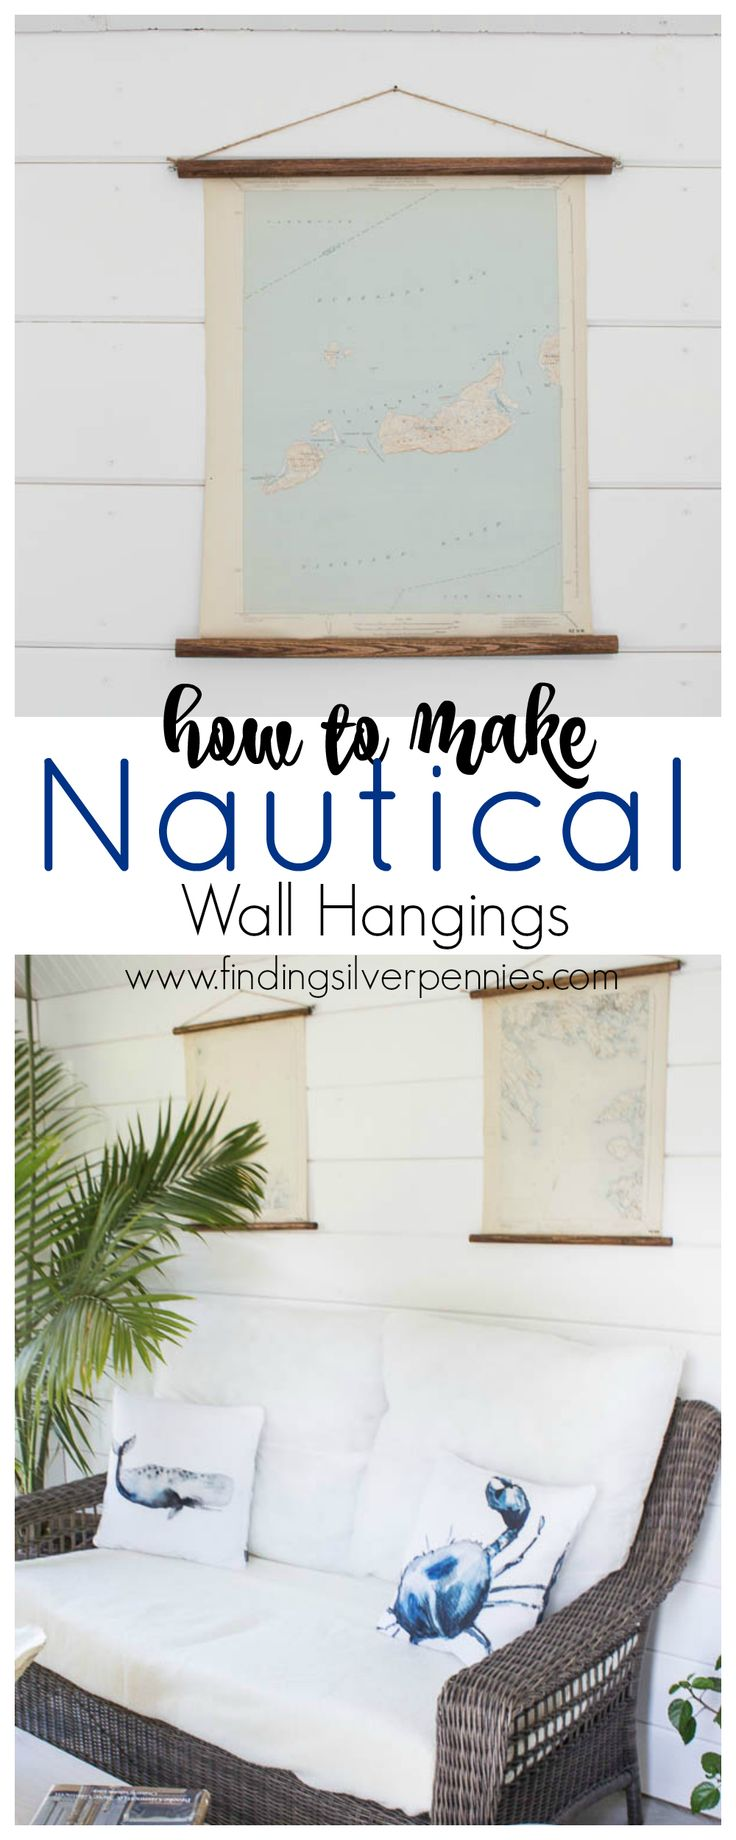 Nautical crafts to make - Nautical Chart Art